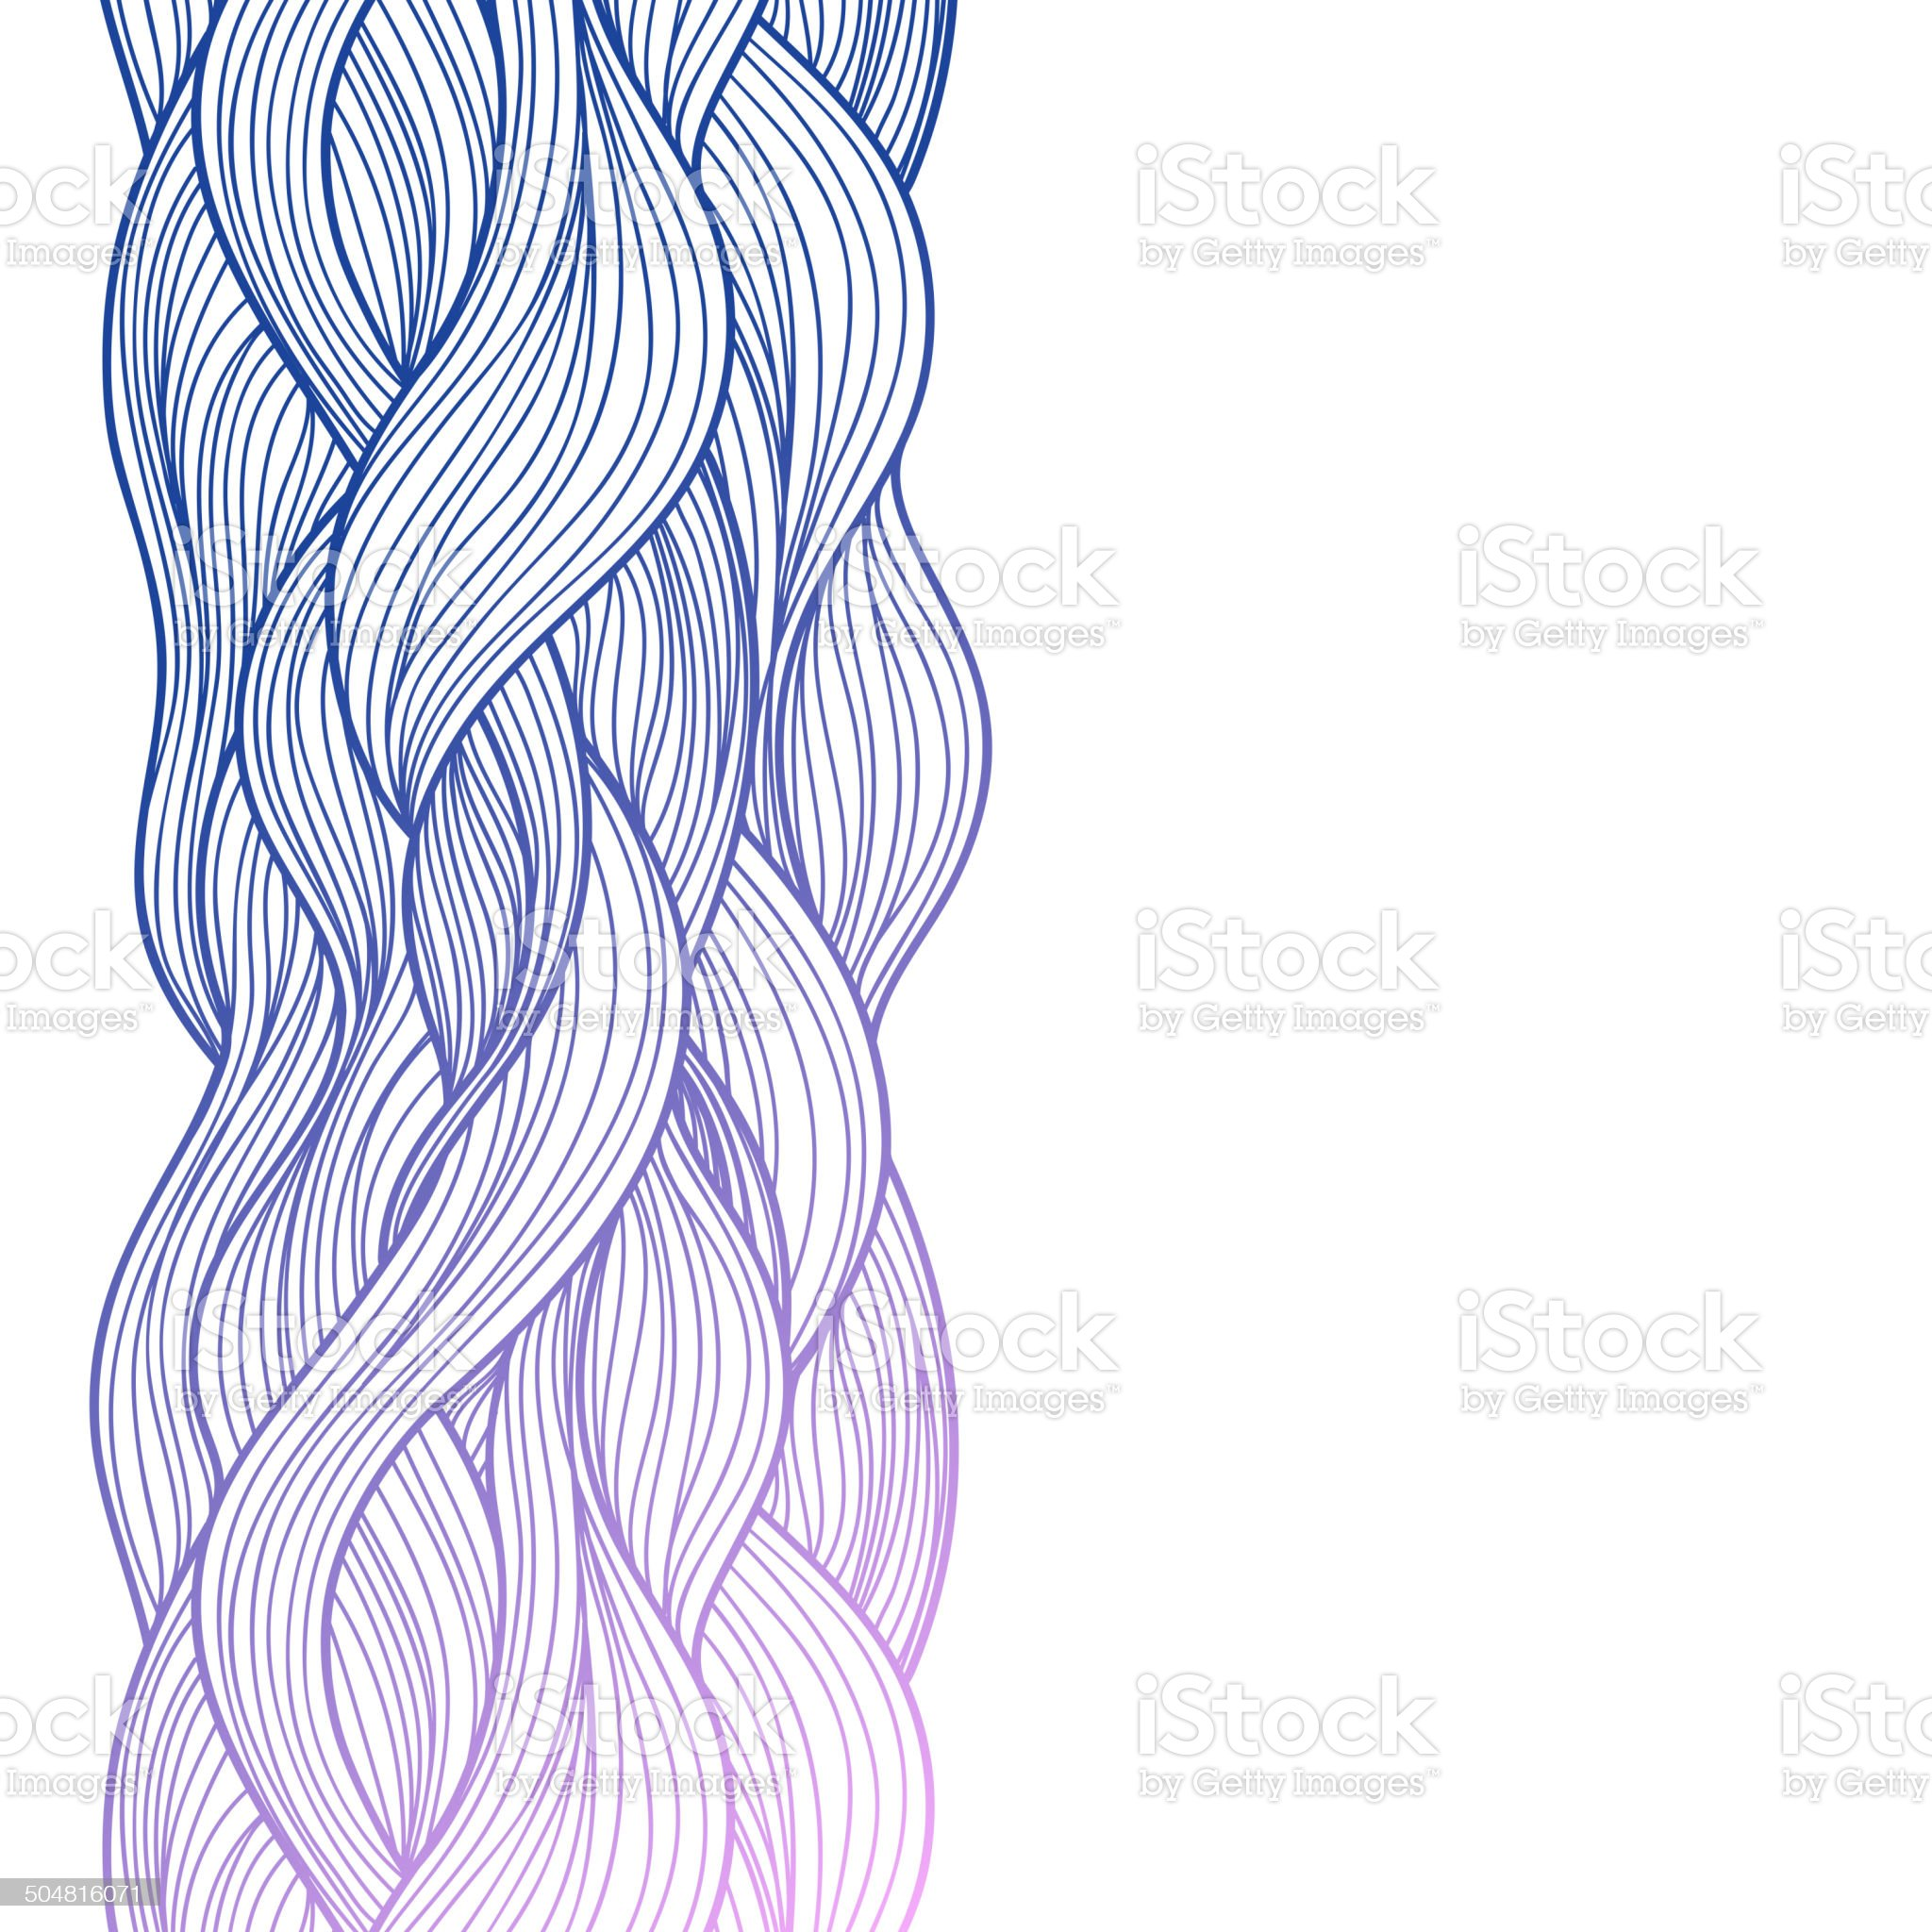 Purple abstract waves background royalty-free stock vector art